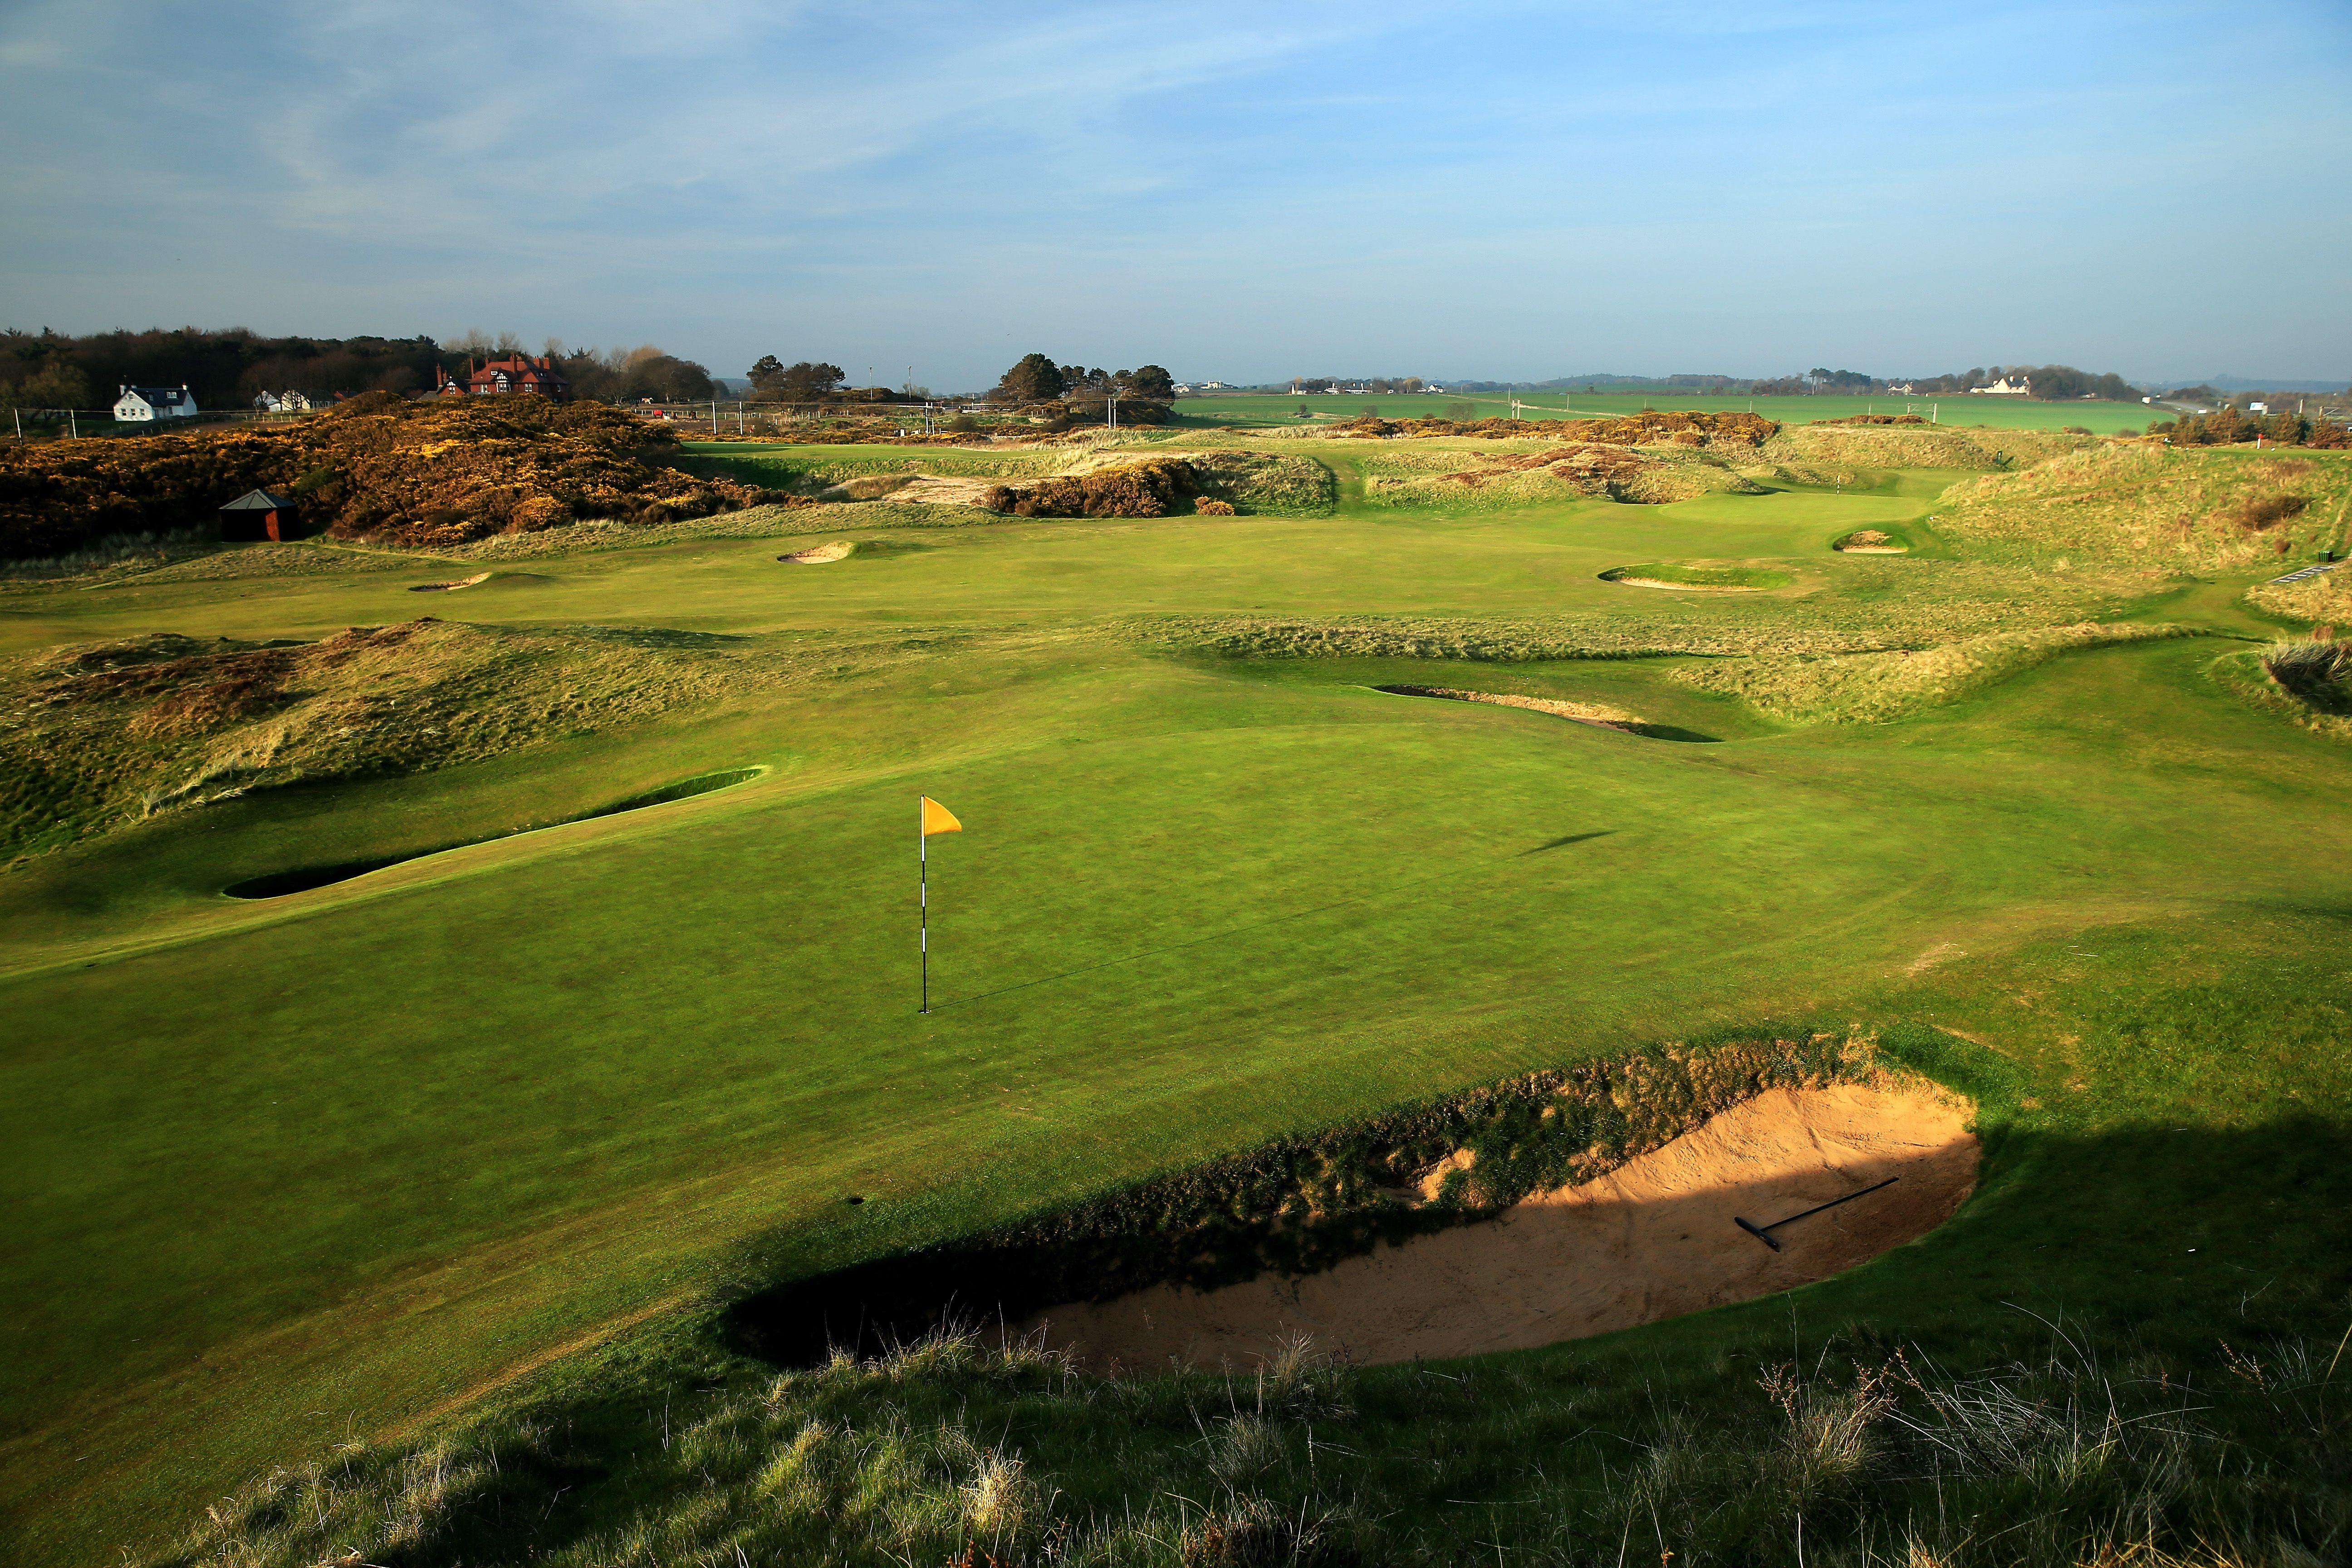 The green on the par 3, 8th hole The Postage Stamp with the par 4, 7th hole behind on the Old Course at Royal Troon